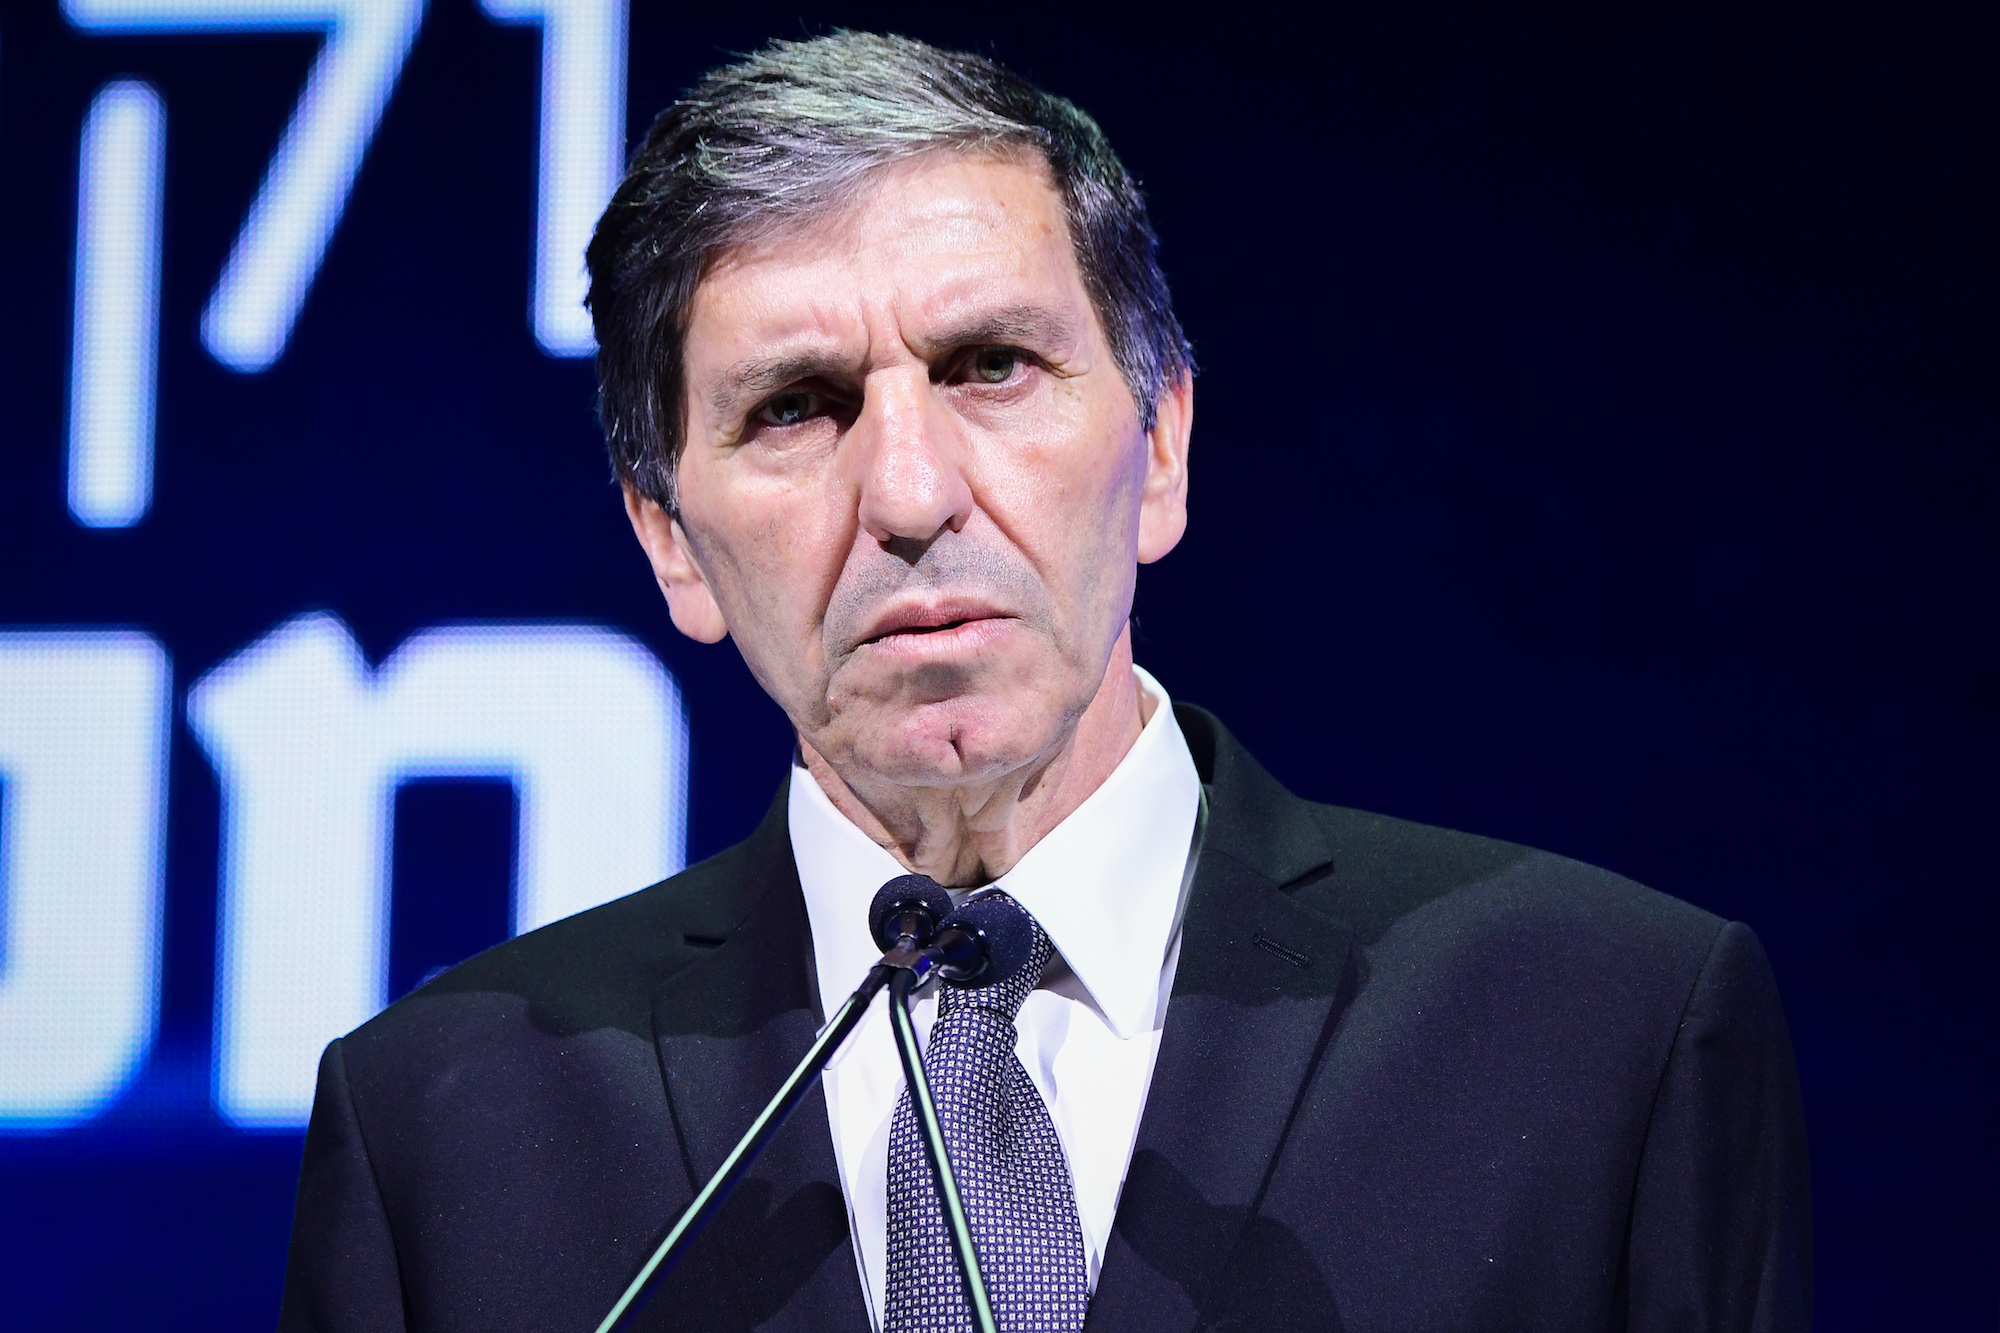 Director General of the Jewish National Fund Danny Atar speaks at the annual international Municipal Innovation Conference in Tel Aviv, February 20, 2020. (Avshalom Sassoni/Flash90)